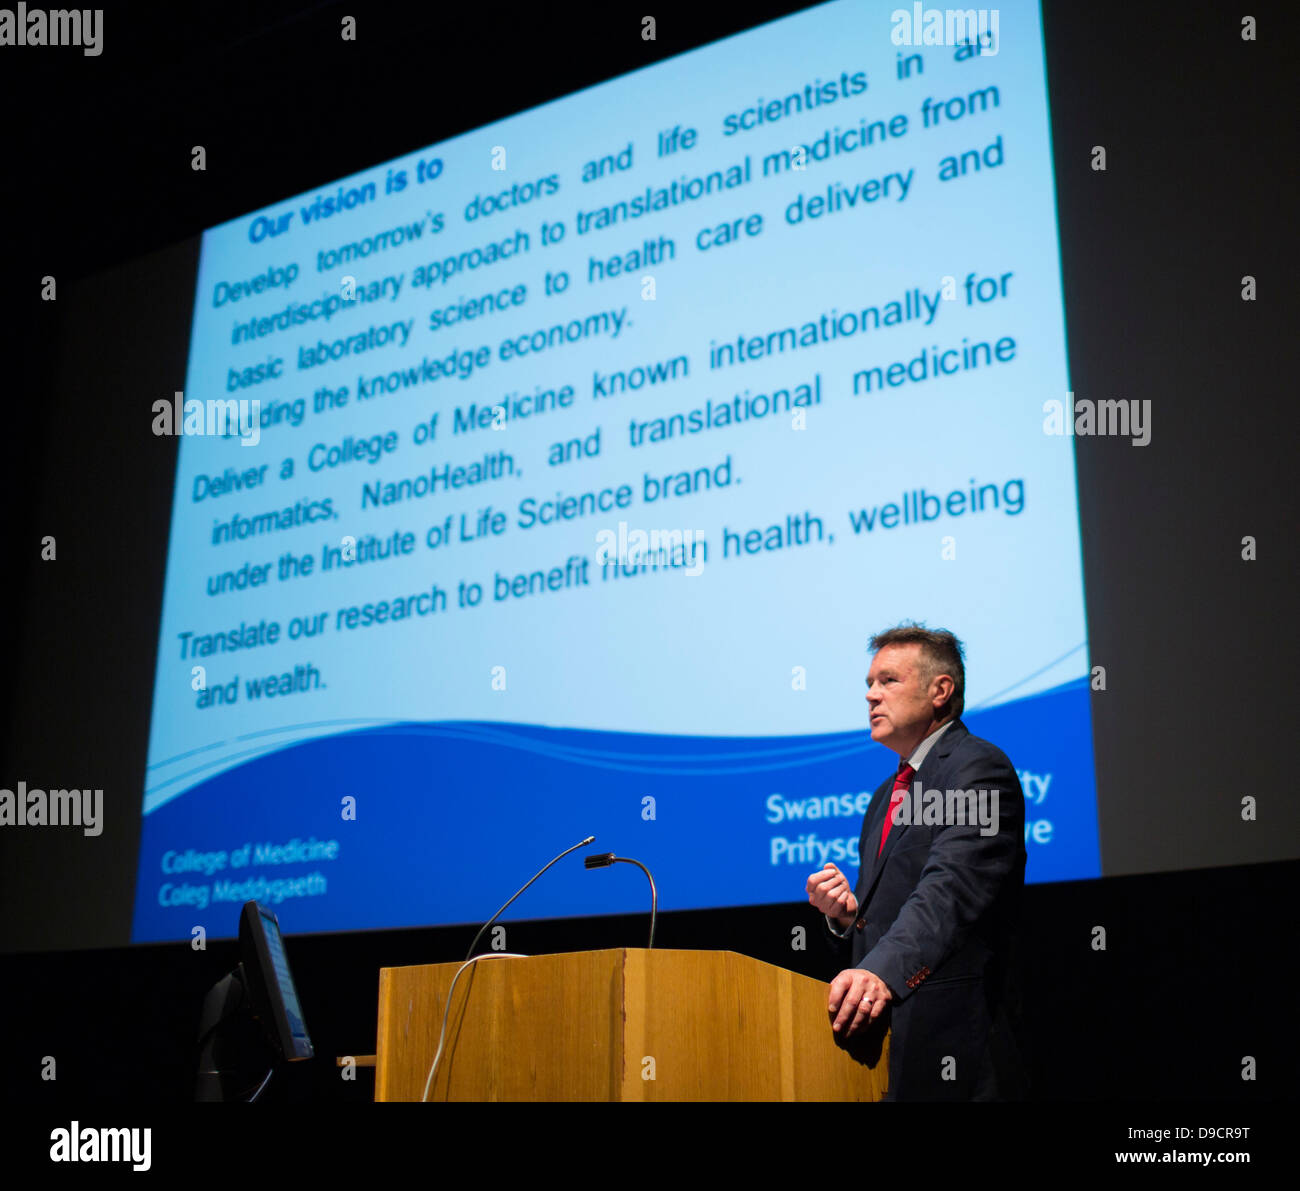 Professor Keith Lloyd, Dean of the College of Medicine at Swansea University, speaking at the CIPHER launch. Stock Photo